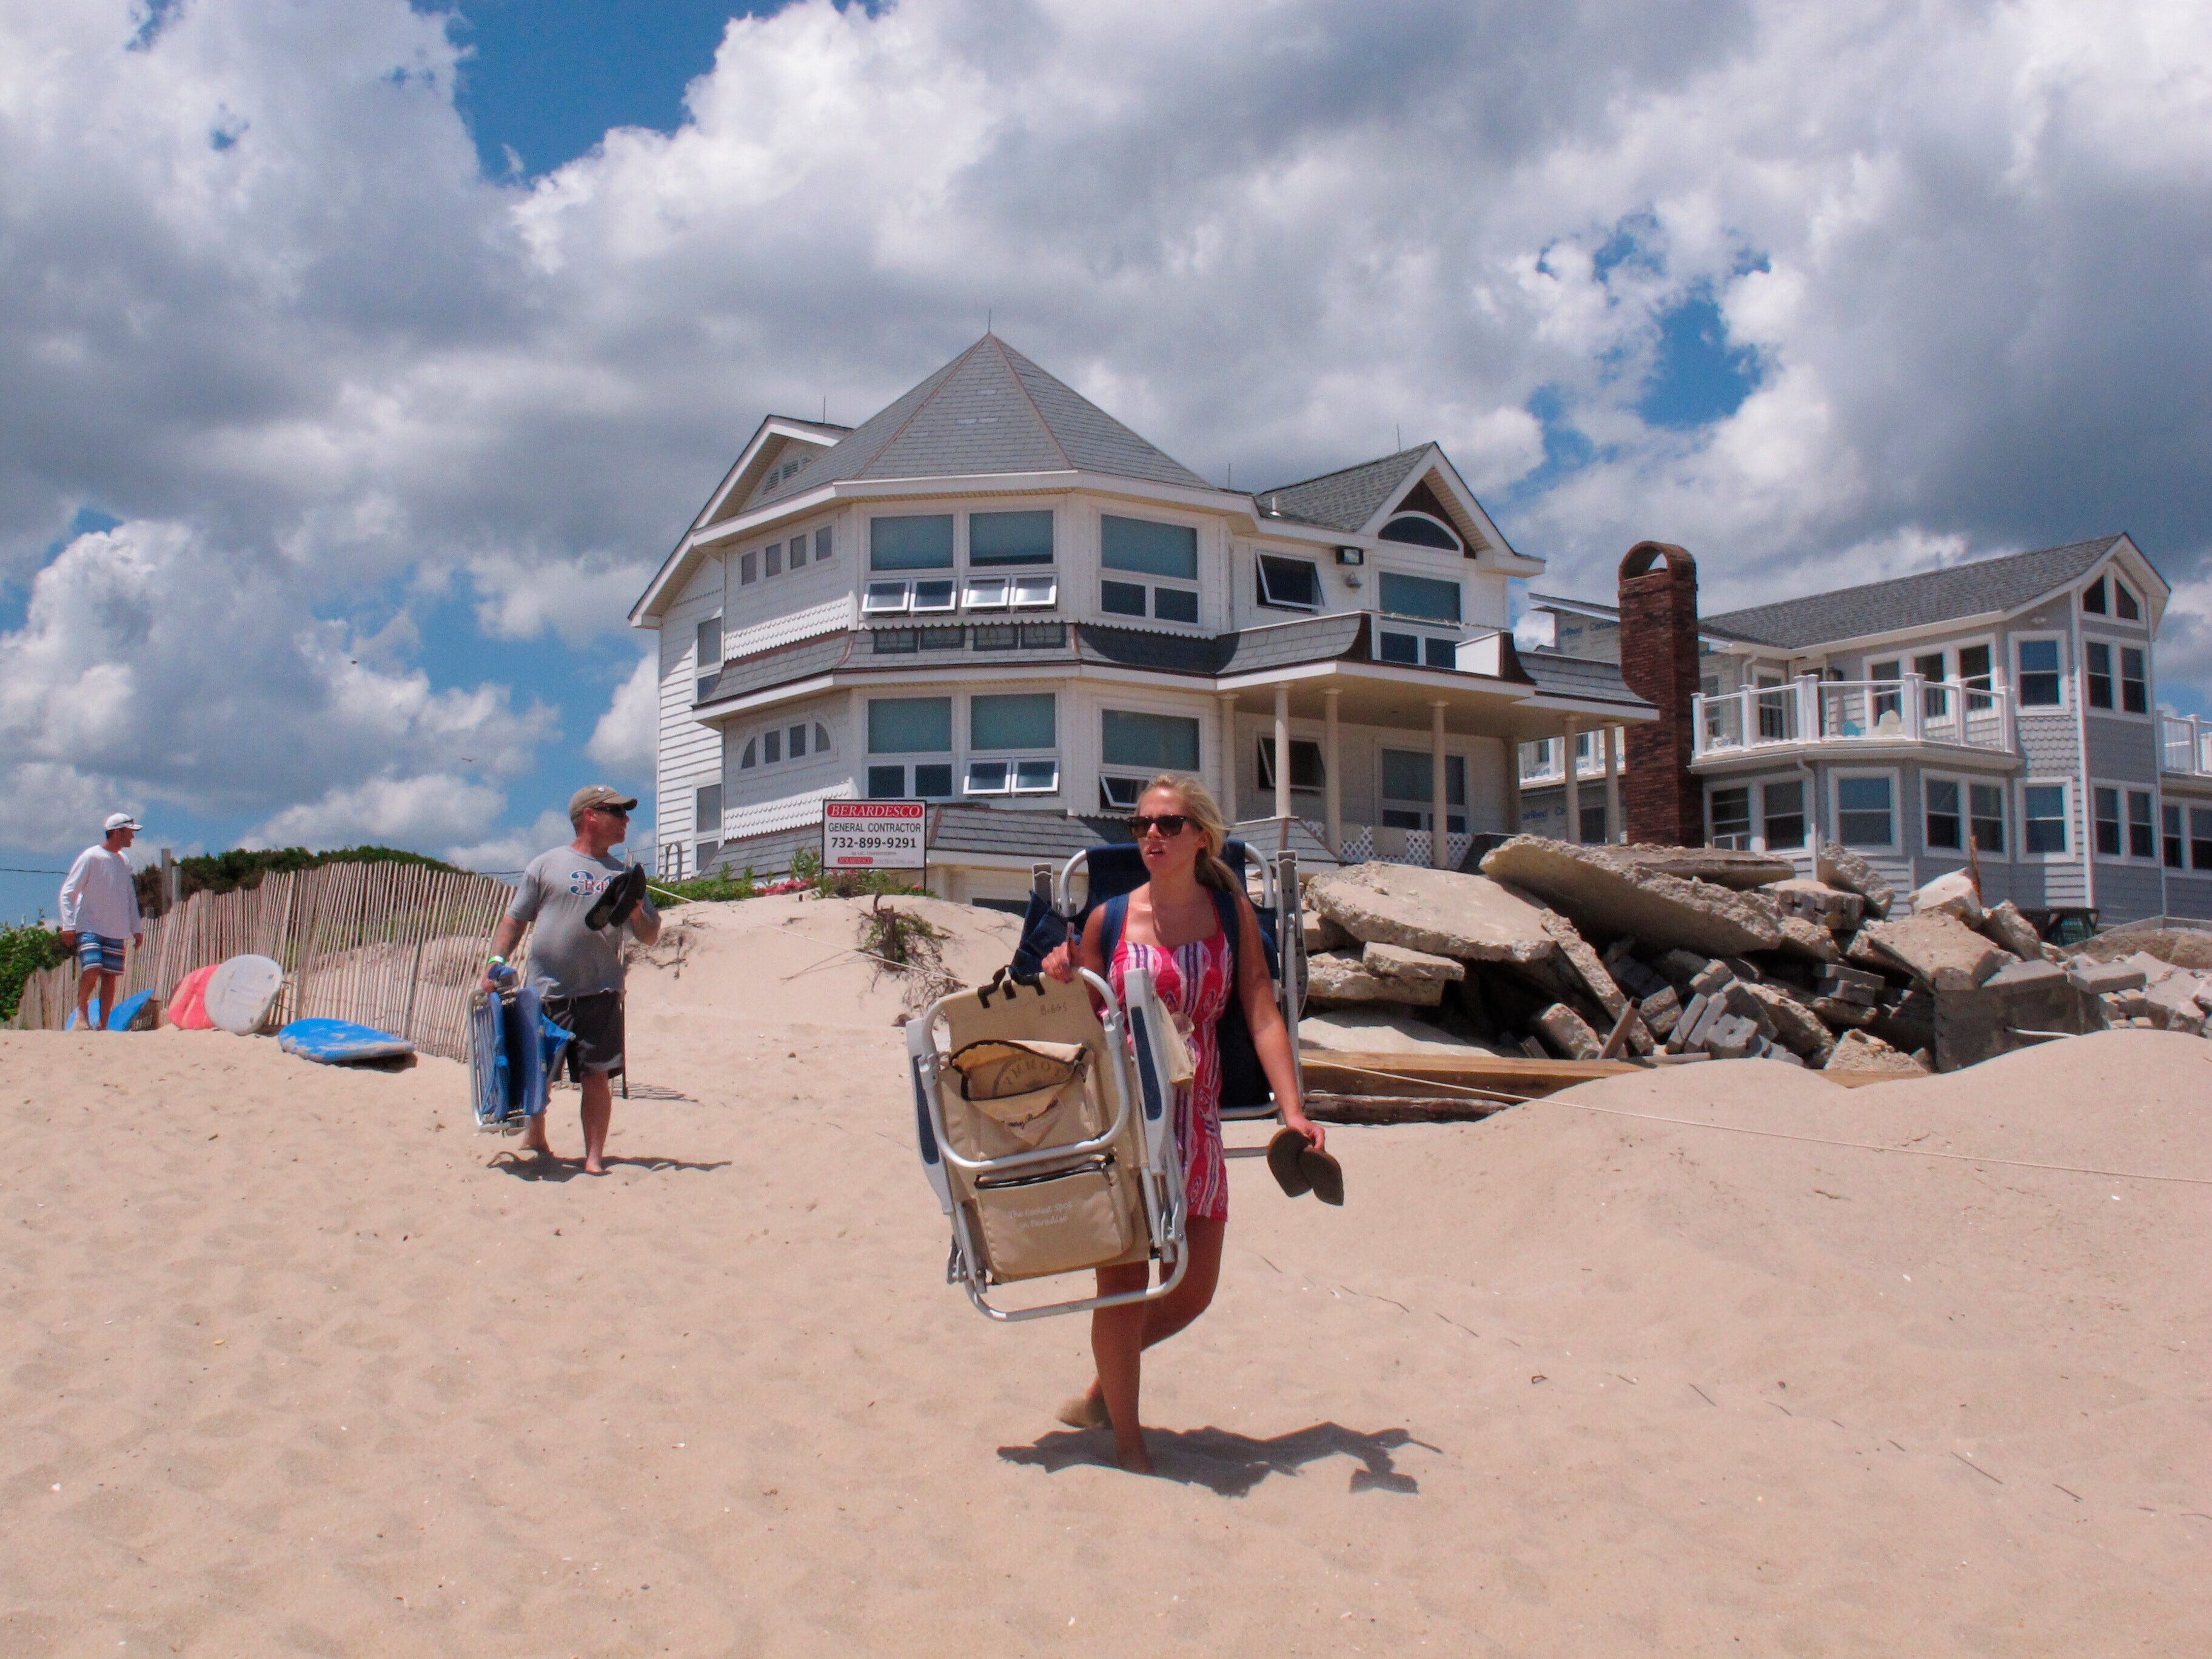 N J Governor Public Beaches On Jersey Shore Must Reopen To All